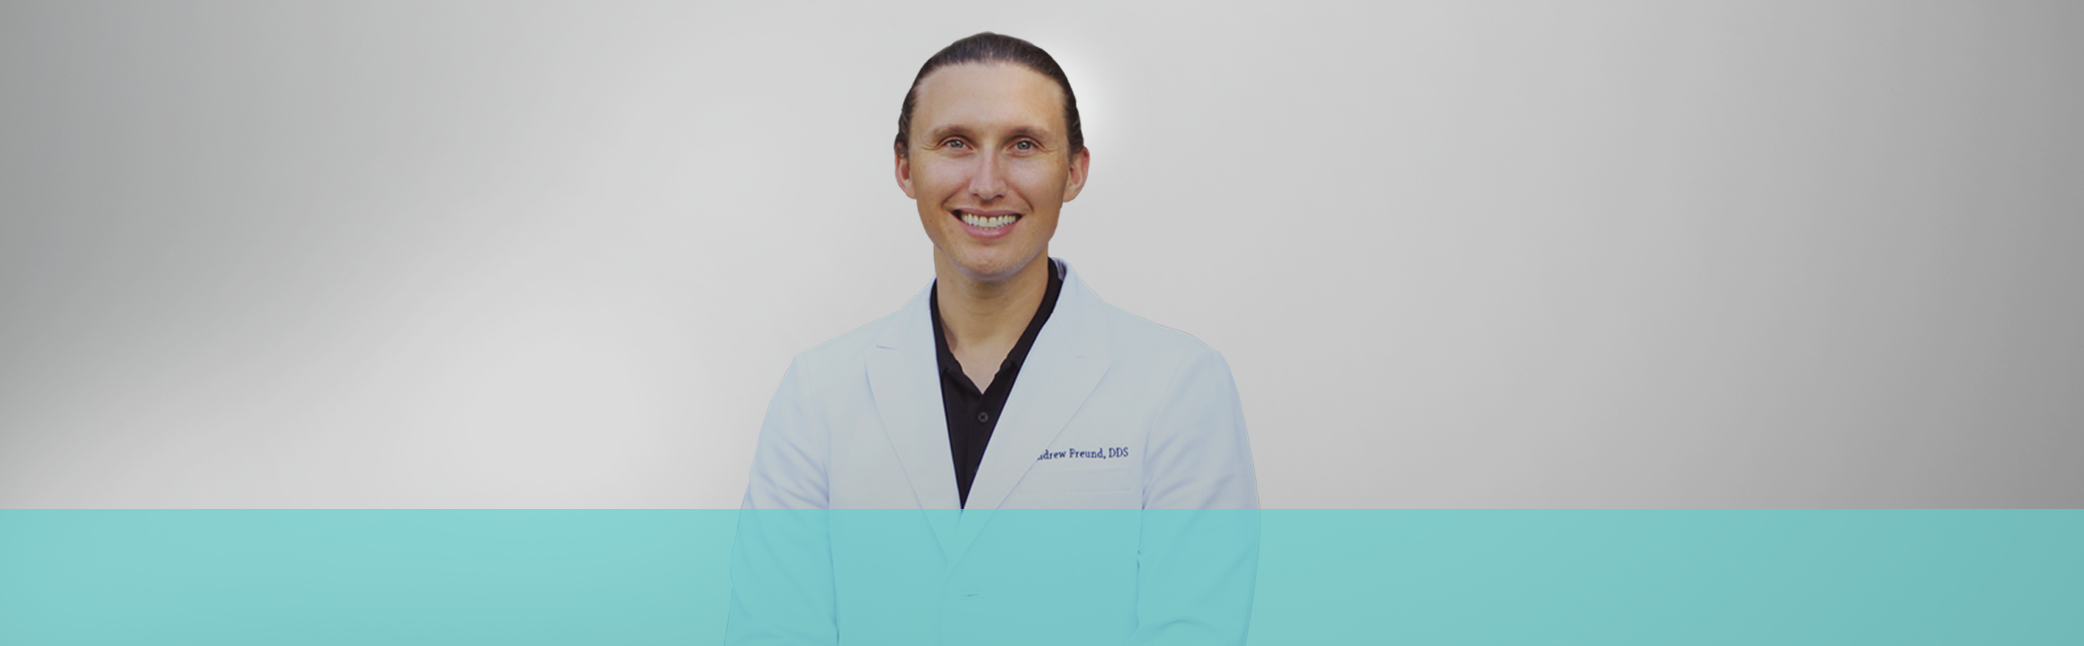 Andrew Freud, DDS  Welcome to the Team!